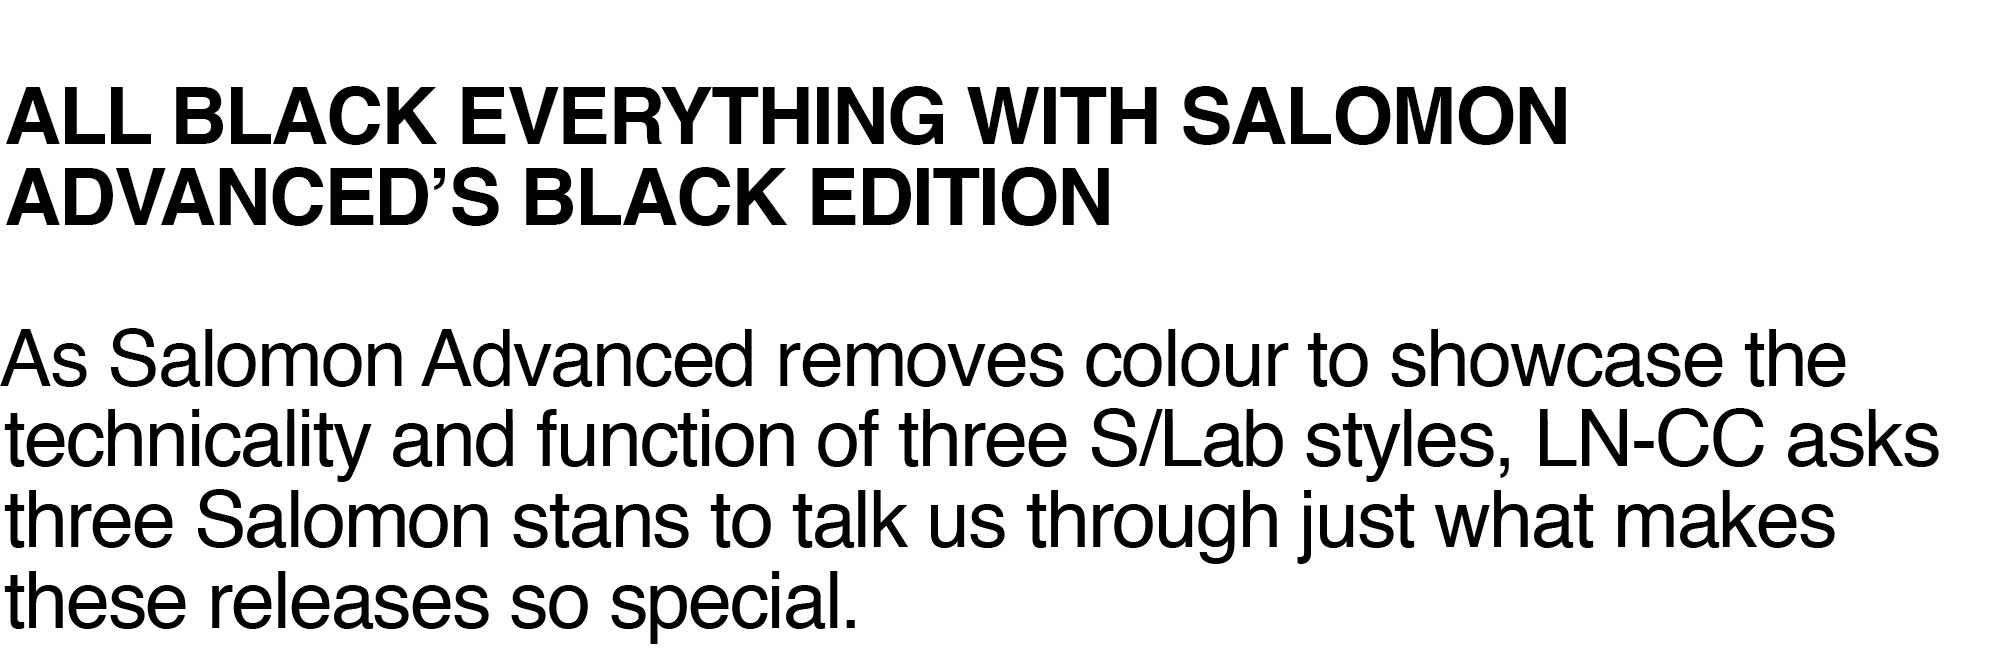 Salomon Advanced Black Edition